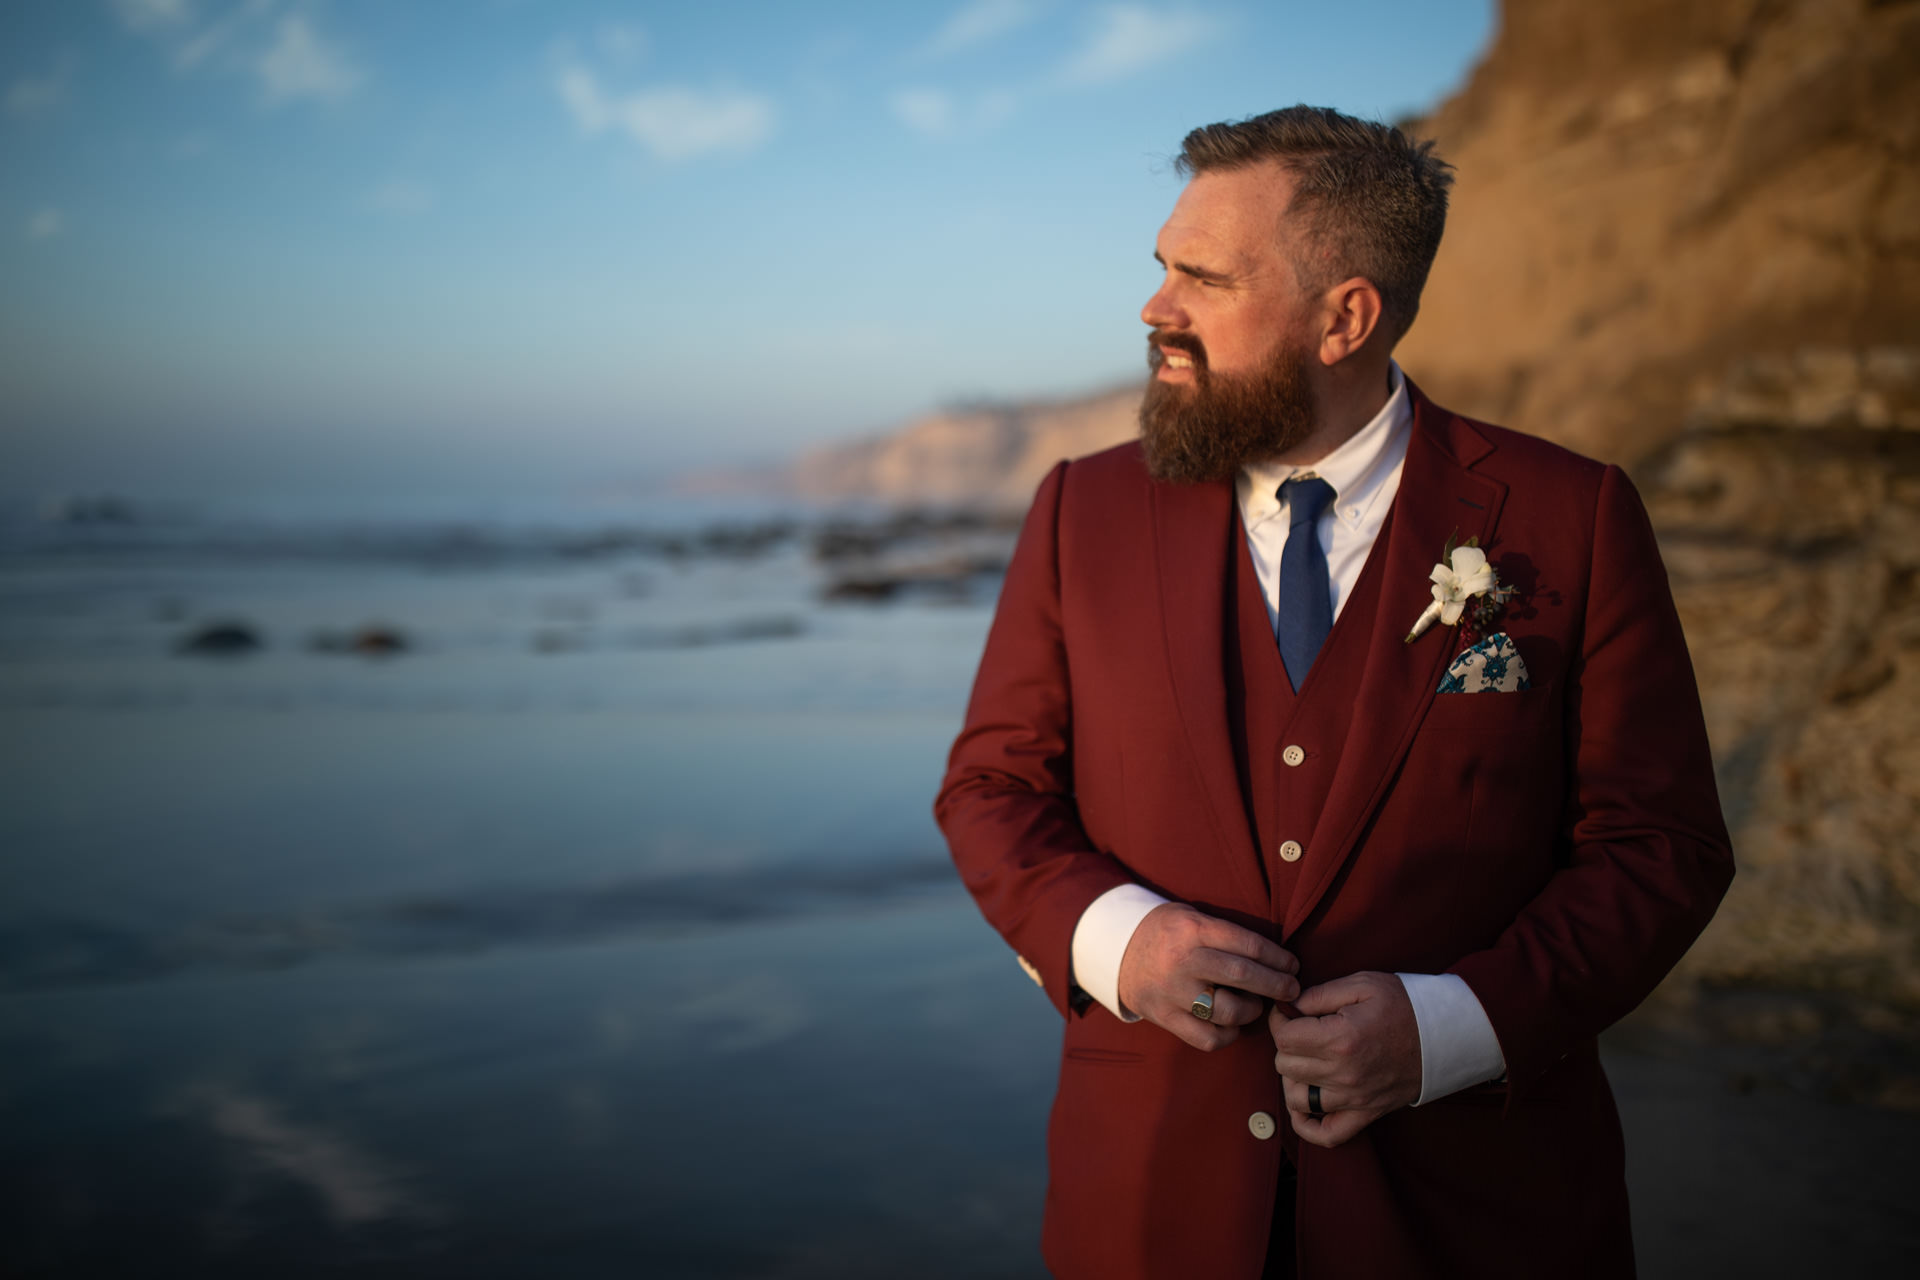 Eric La Jolla Groom Portrait San Diego Beach Wedding Sunset by Faces Photography